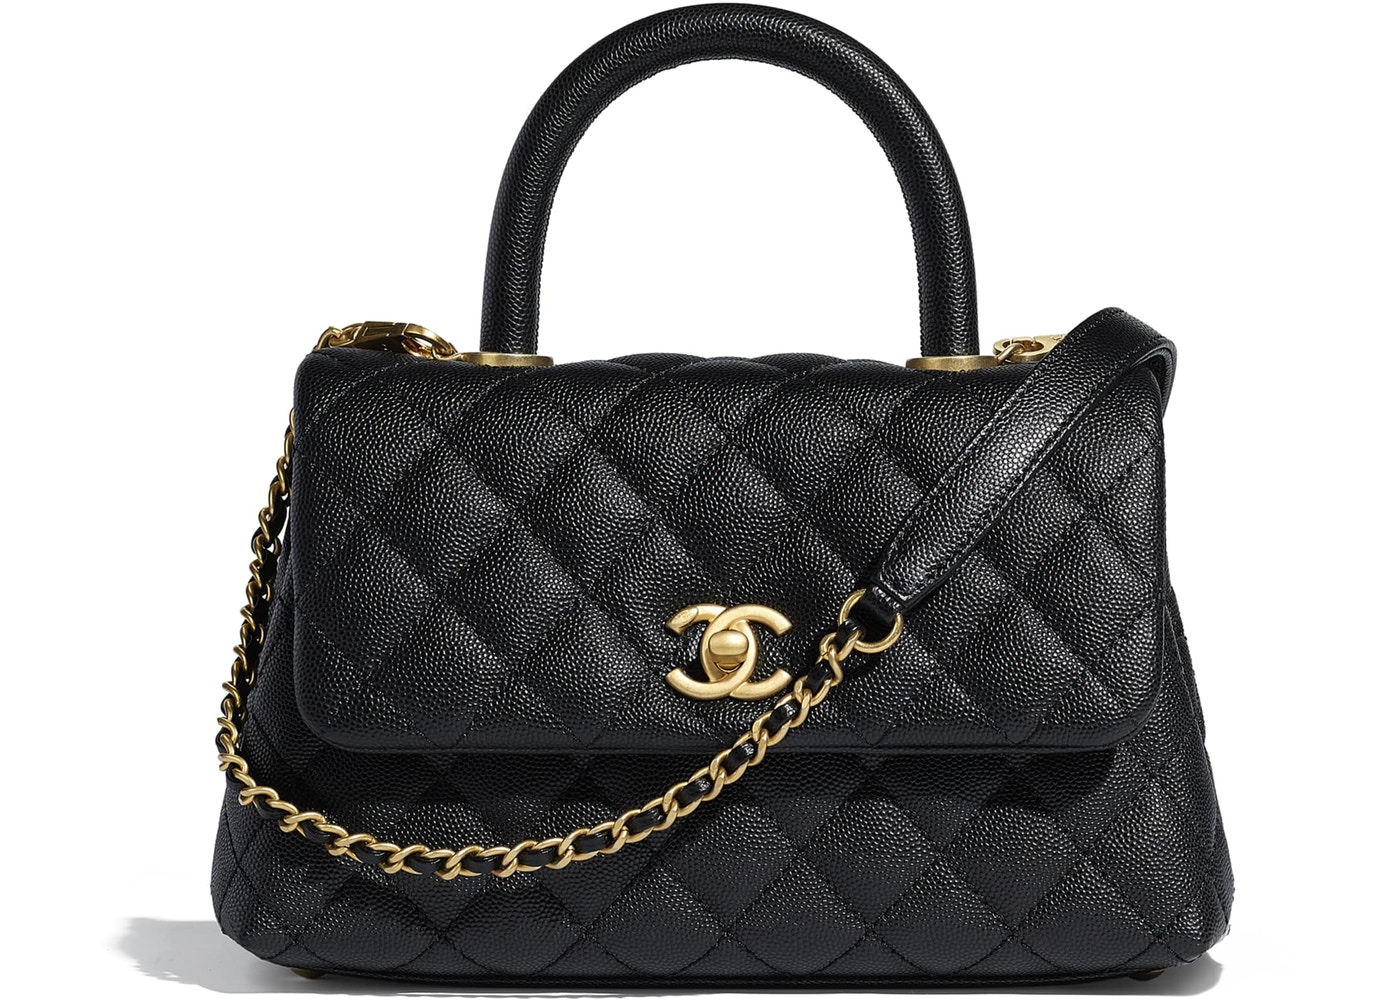 Chanel Flap Bag Top Handle Quilted Grained Calfskin Gold Tone Small Black